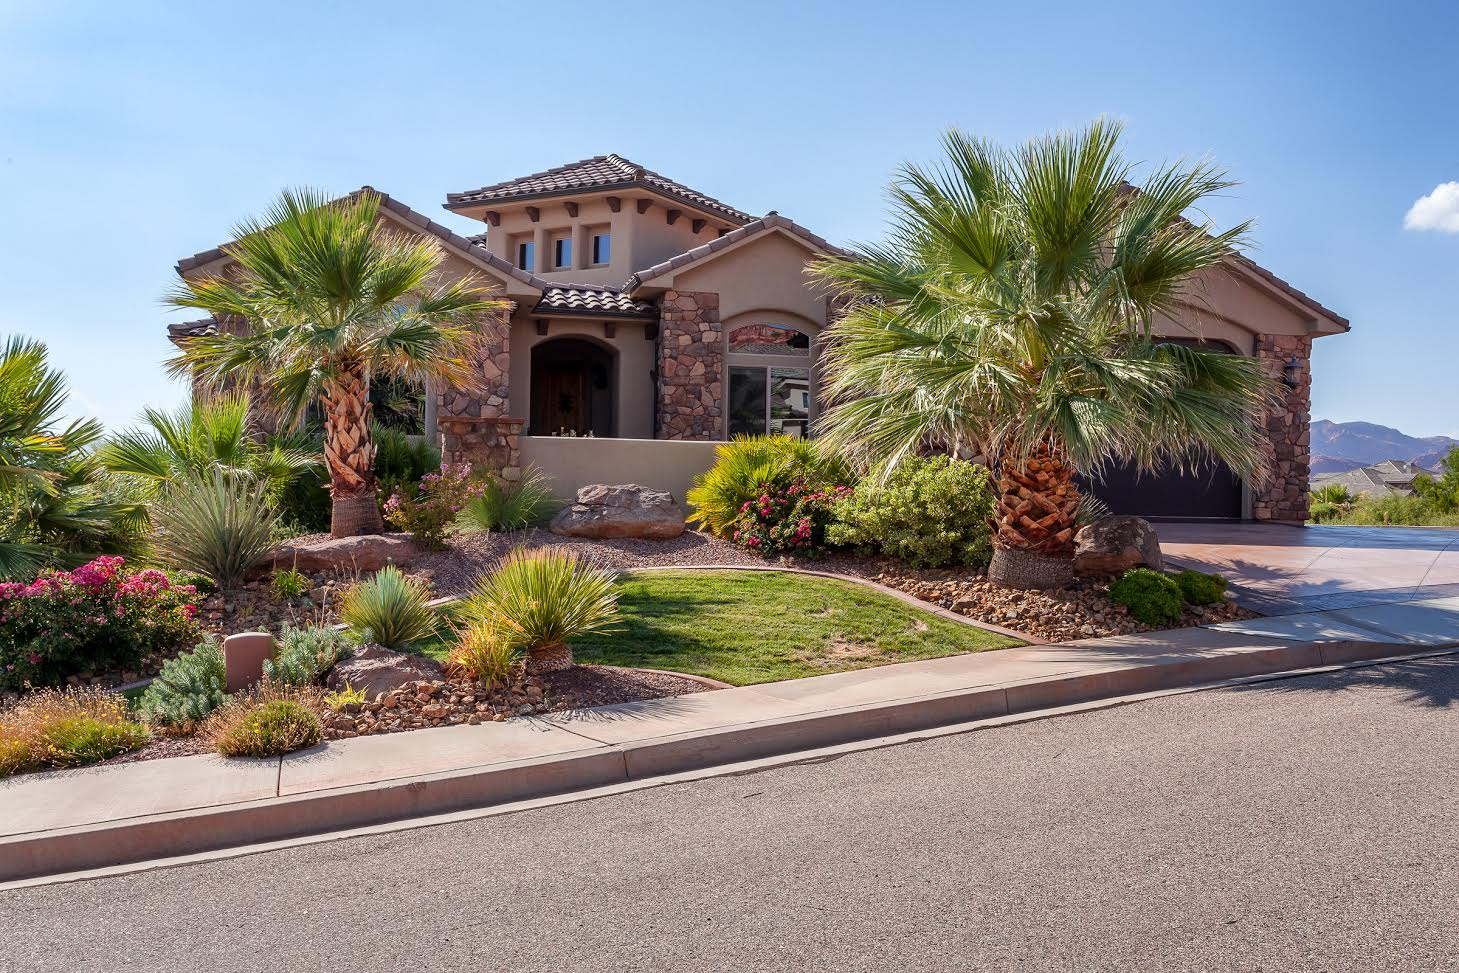 Homes for Rent in St. George!